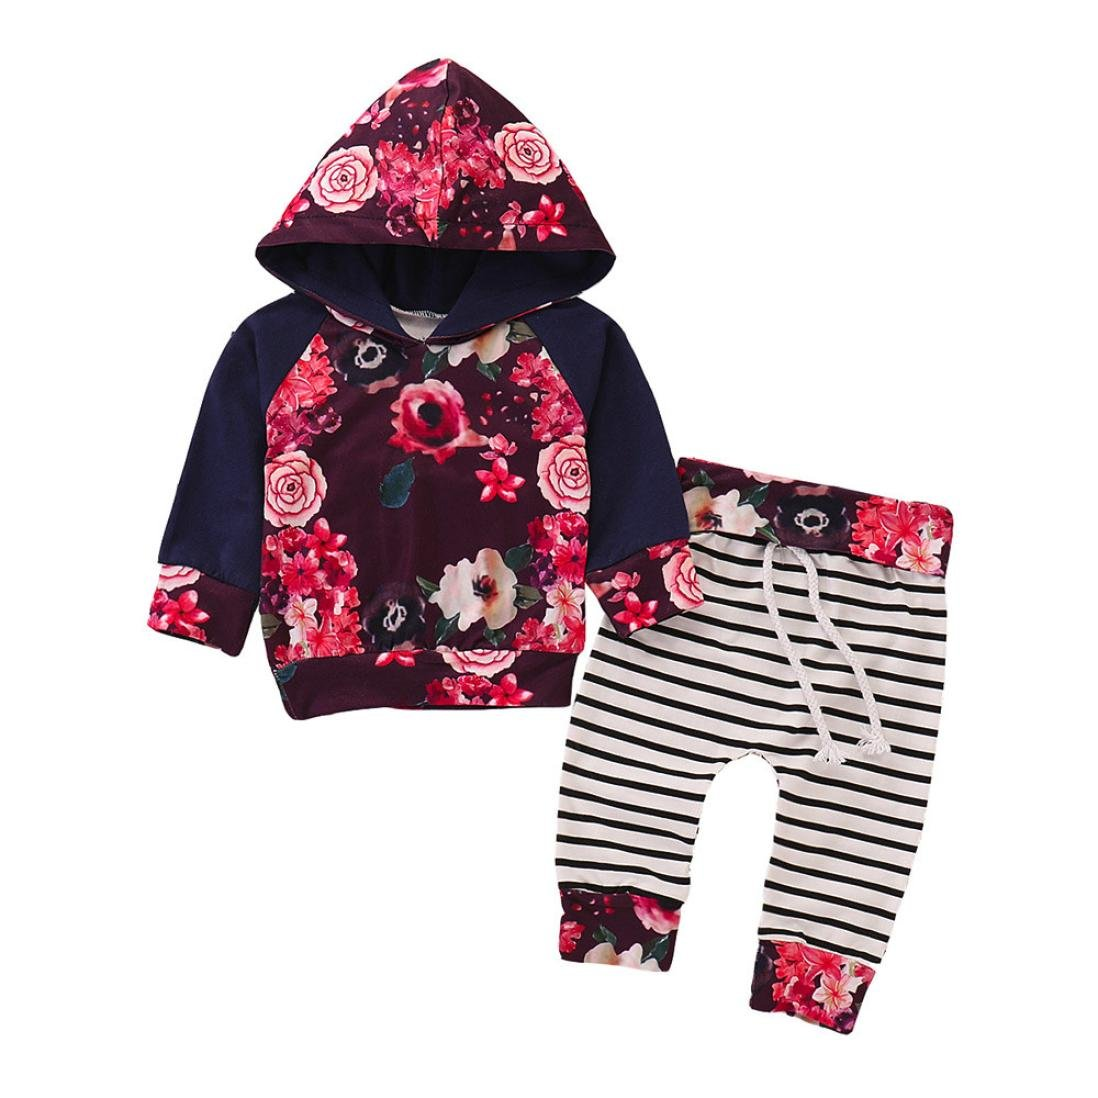 Clearance Sale! Baby Sweatshirt Set Halloween, Iuhan Newborn Baby Boys Girls Floral Hoodie Tops+Prin Striped Pants Clothes Sets (12Months, Navy) Iuhan ®